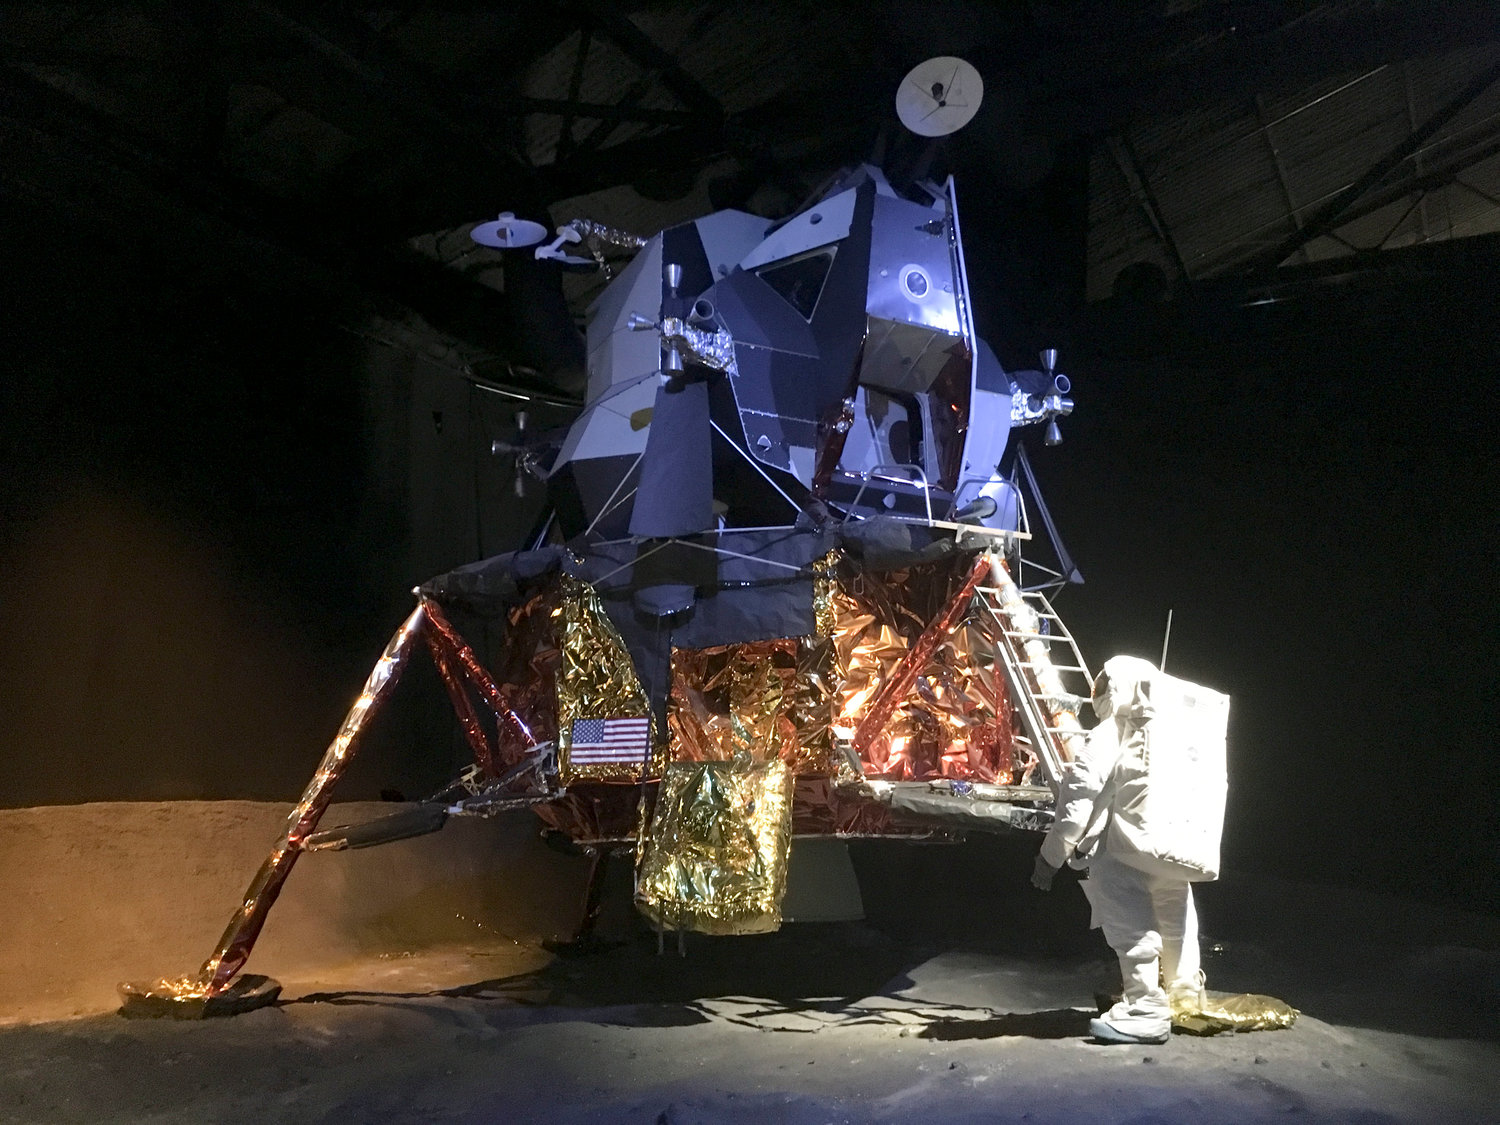 An example of a lunar module that would have been used during Apollo 18, 19 or 20 missions.